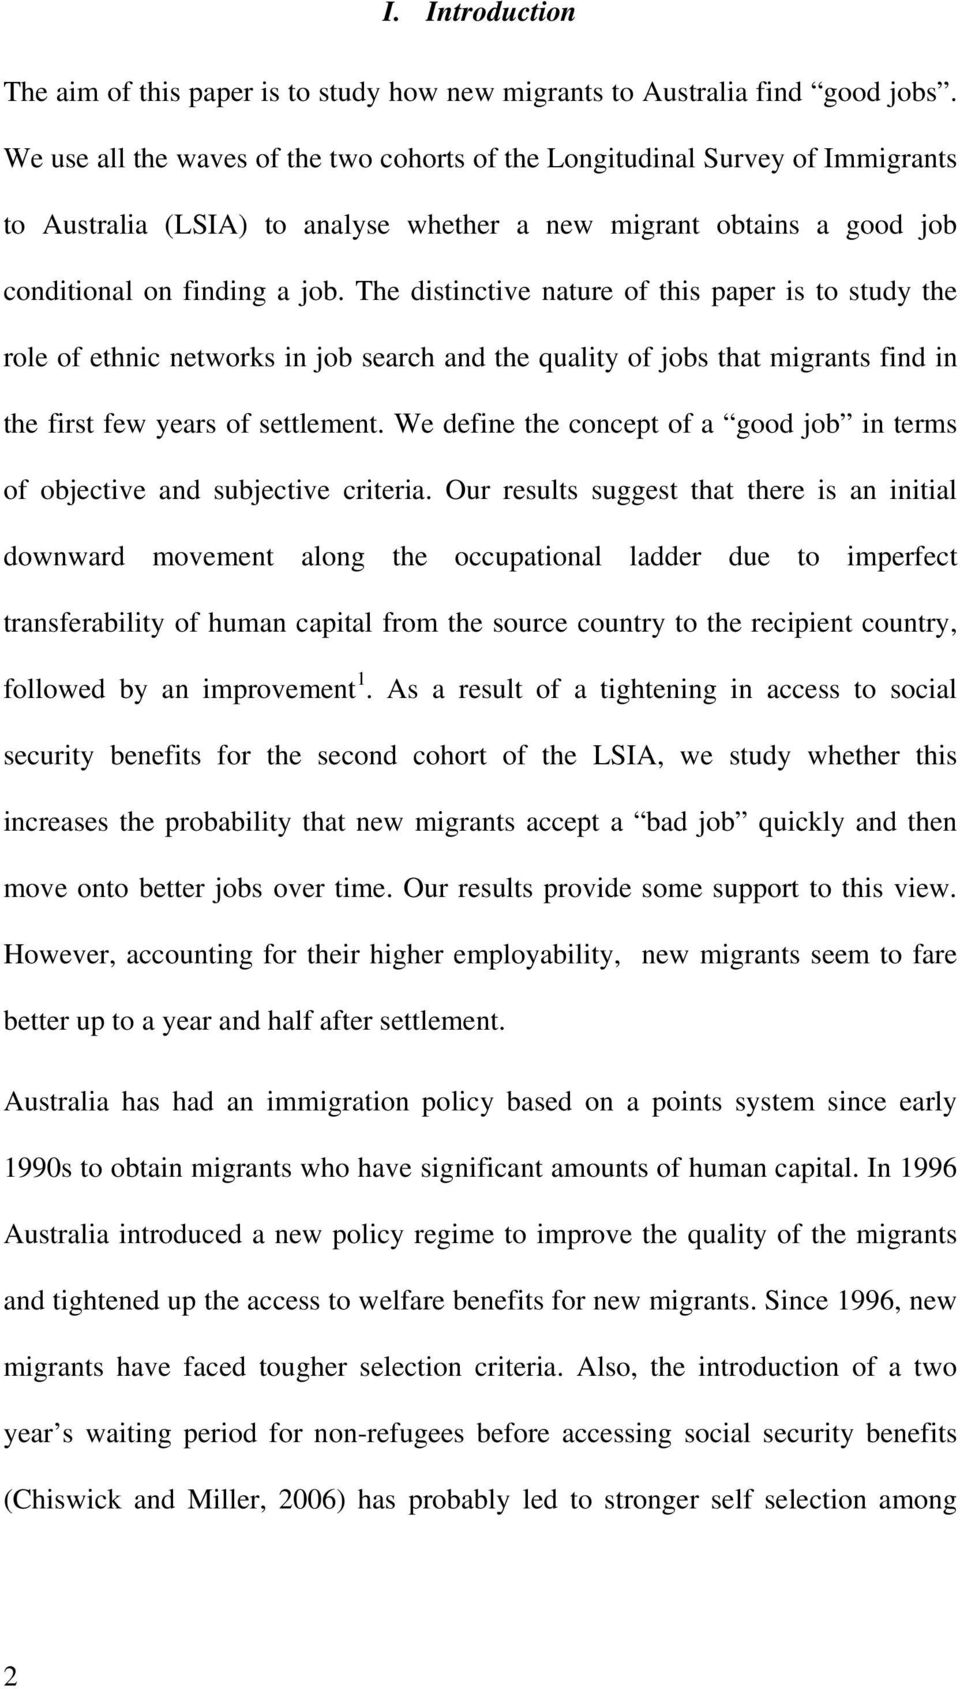 The distinctive nature of this paper is to study the role of ethnic networks in job search and the quality of jobs that migrants find in the first few years of settlement.